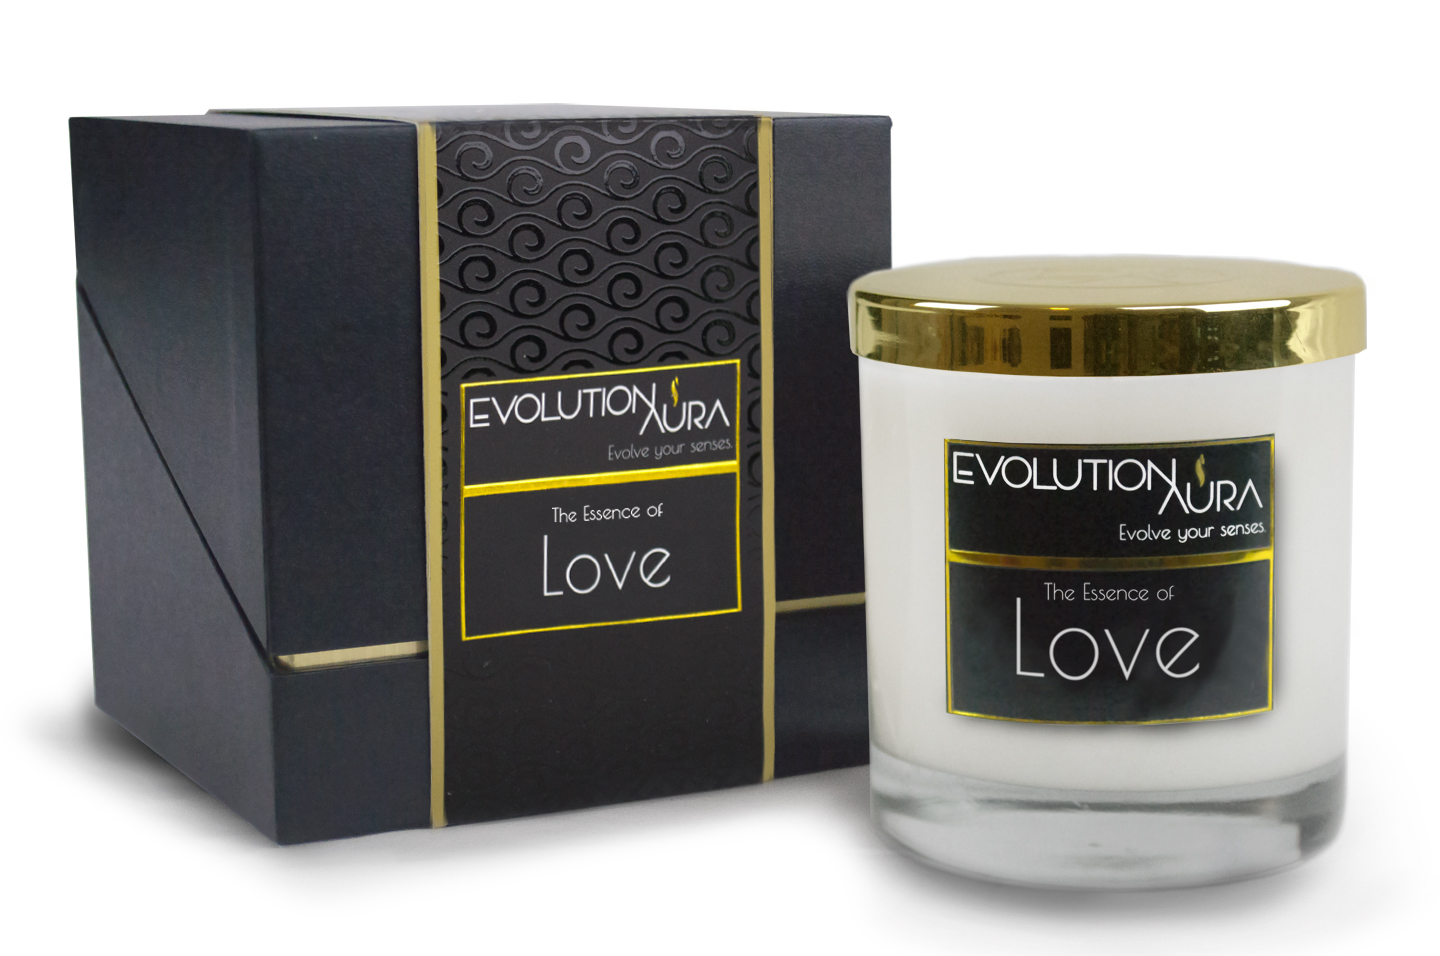 Love_box_and_product